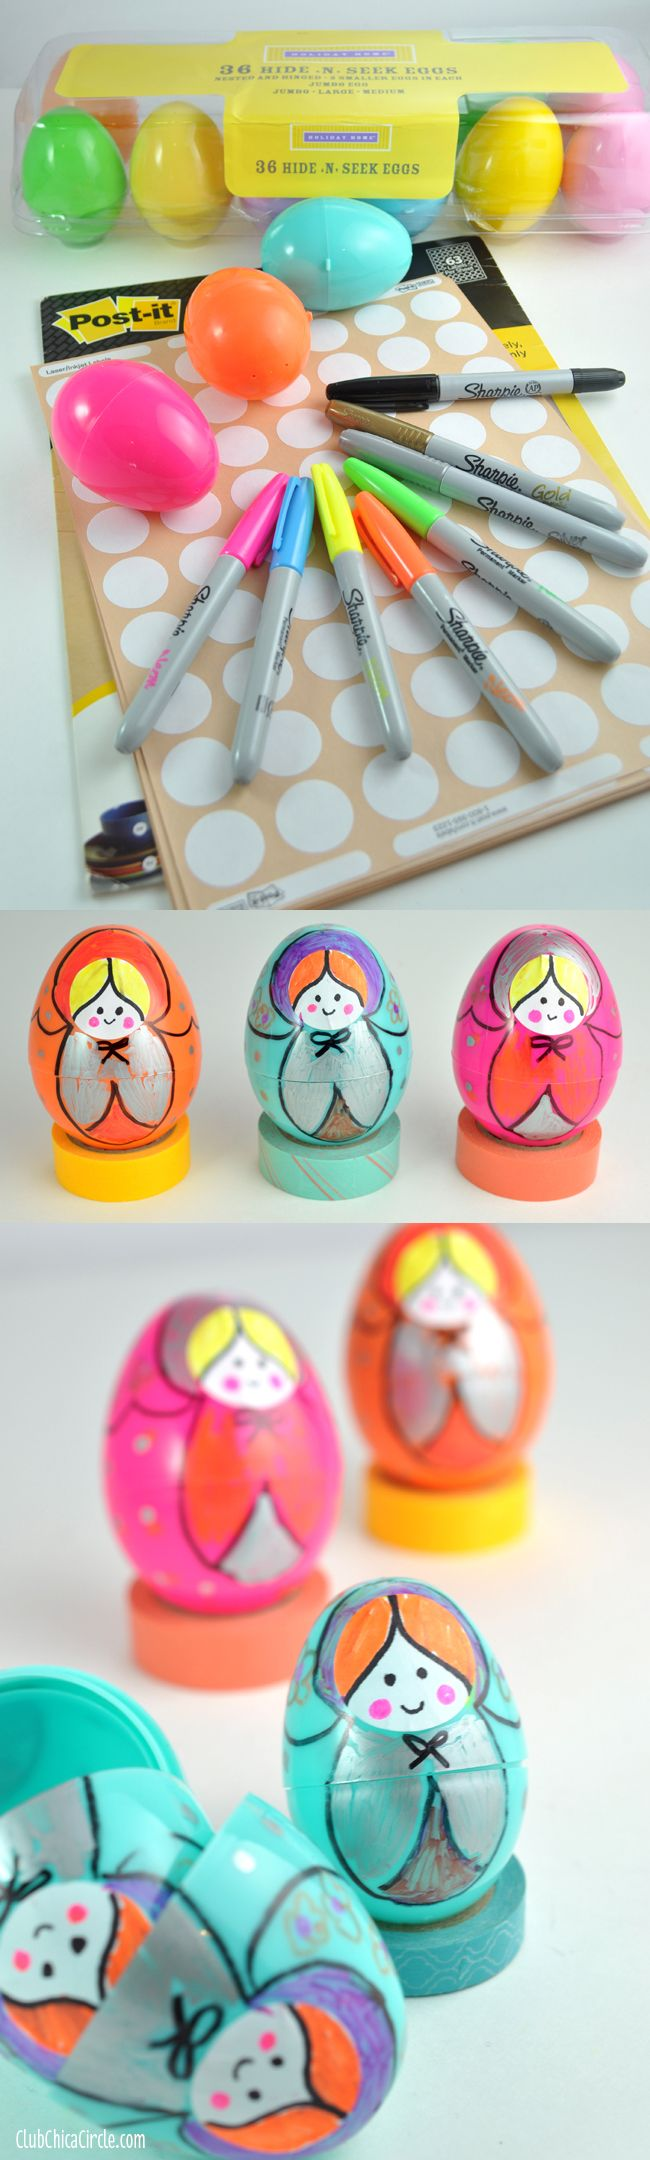 Make Russian Nesting Dolls Out Of Plastic Easter Eggs And Office